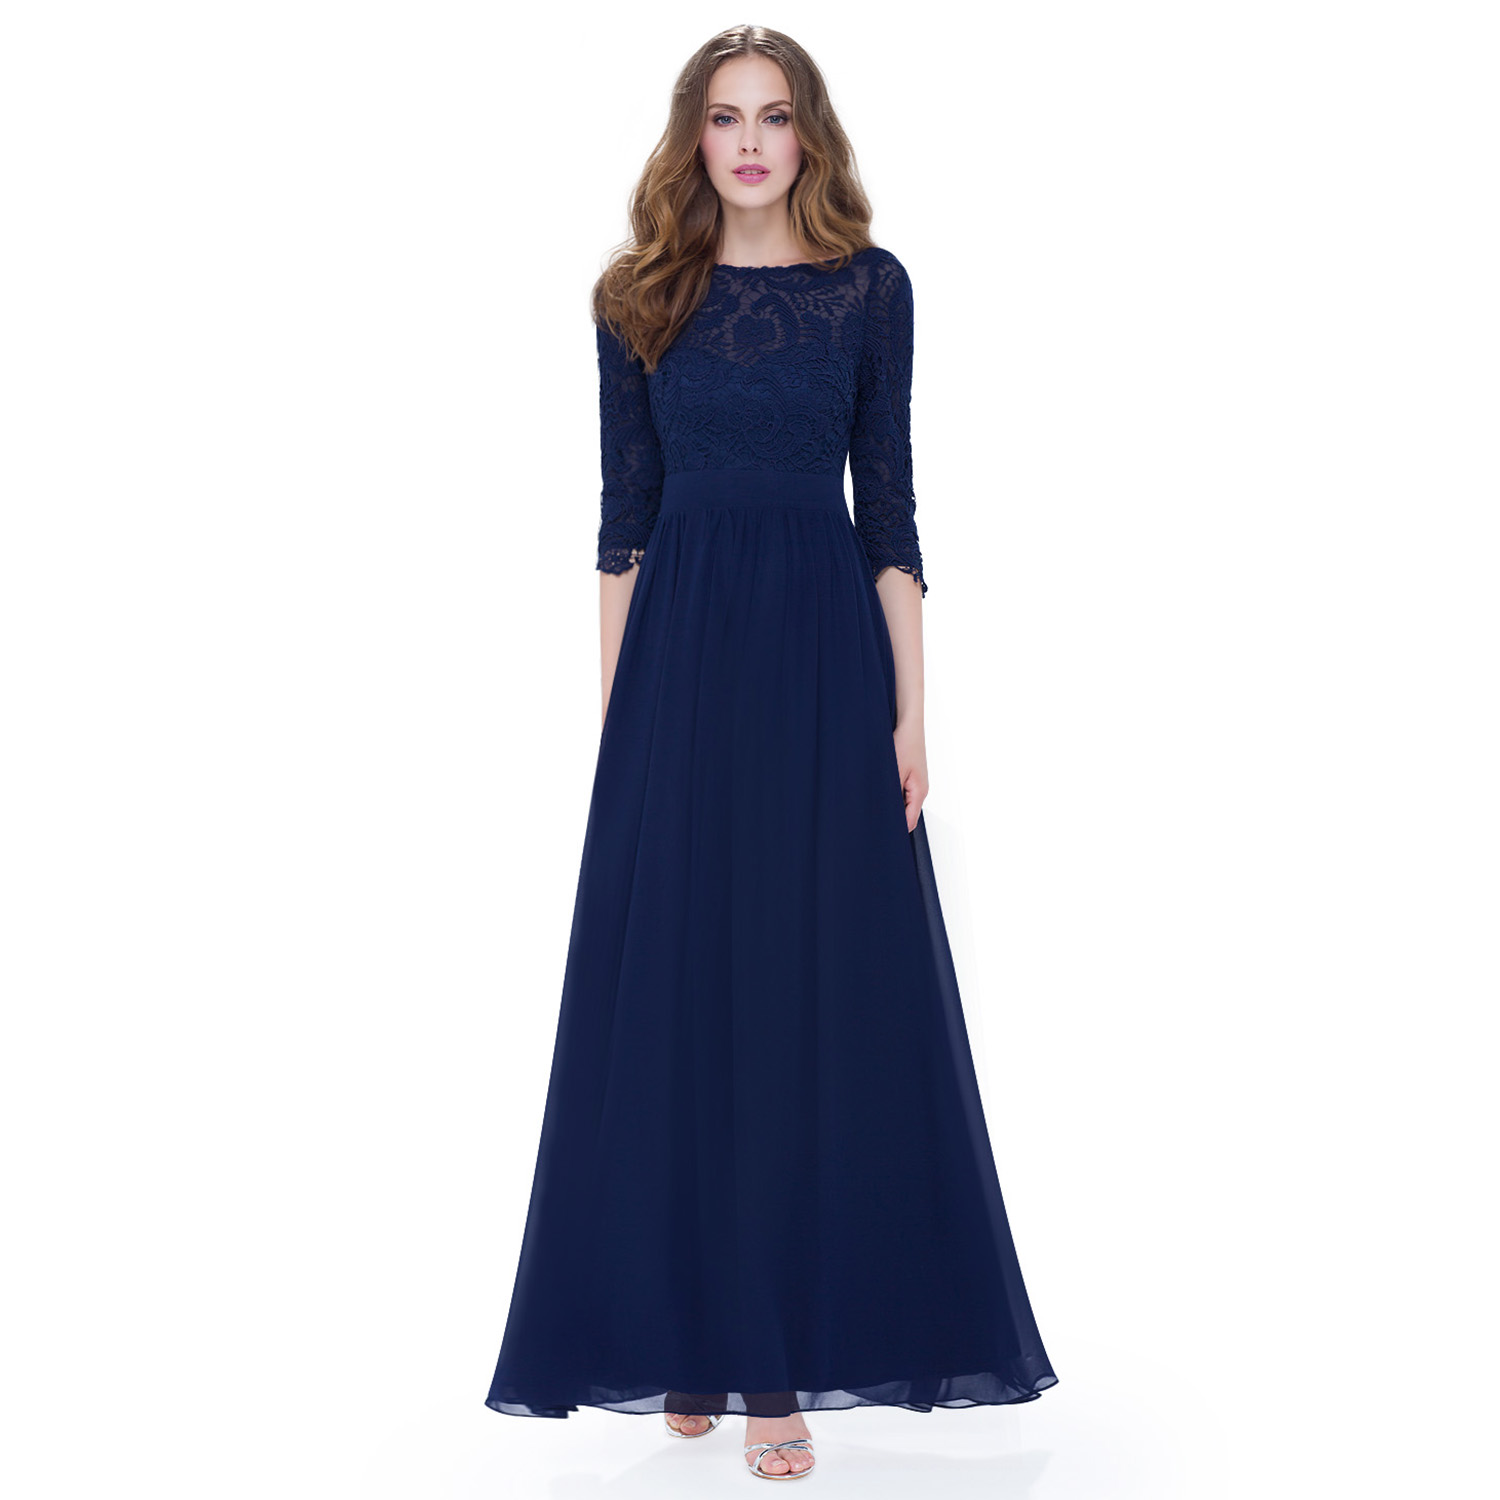 Womens 3/4 Sleeves Lace Bridesmaid Dresses Evening Prom Gown 08412 ...